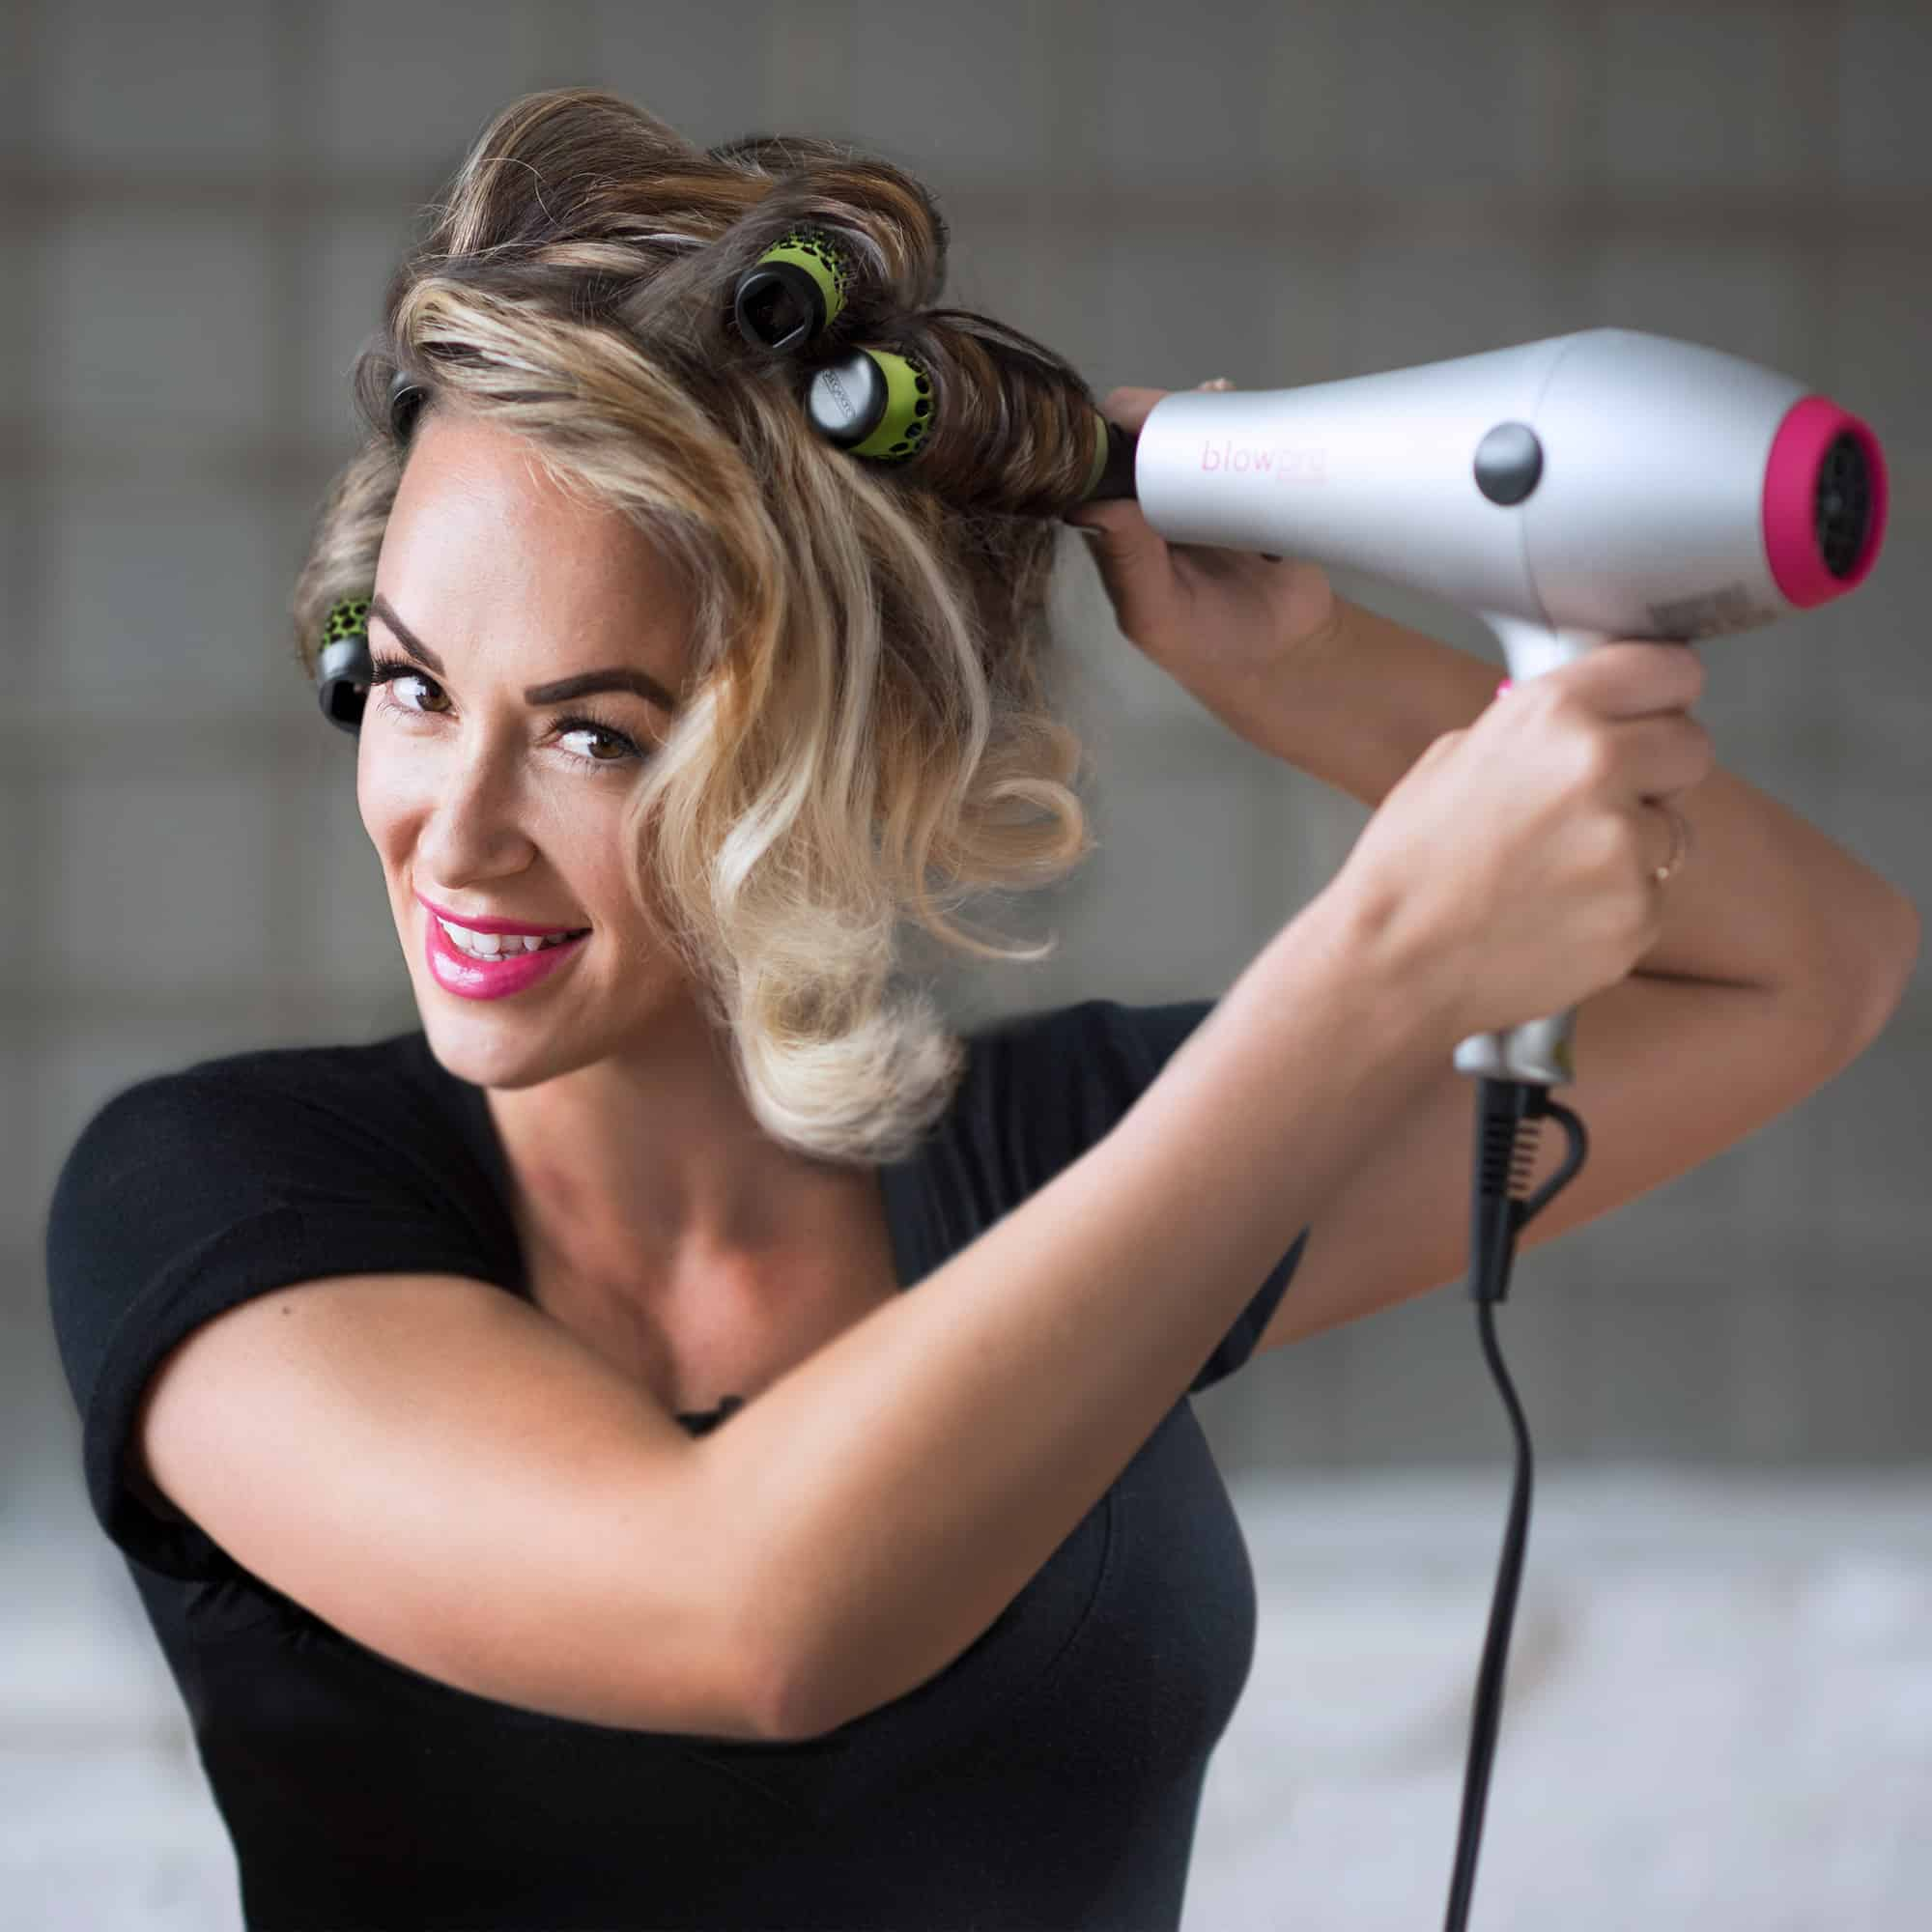 Model using Extra Small Click n Curl Barrels while Hair-drying for an at home DIY Blowout style.